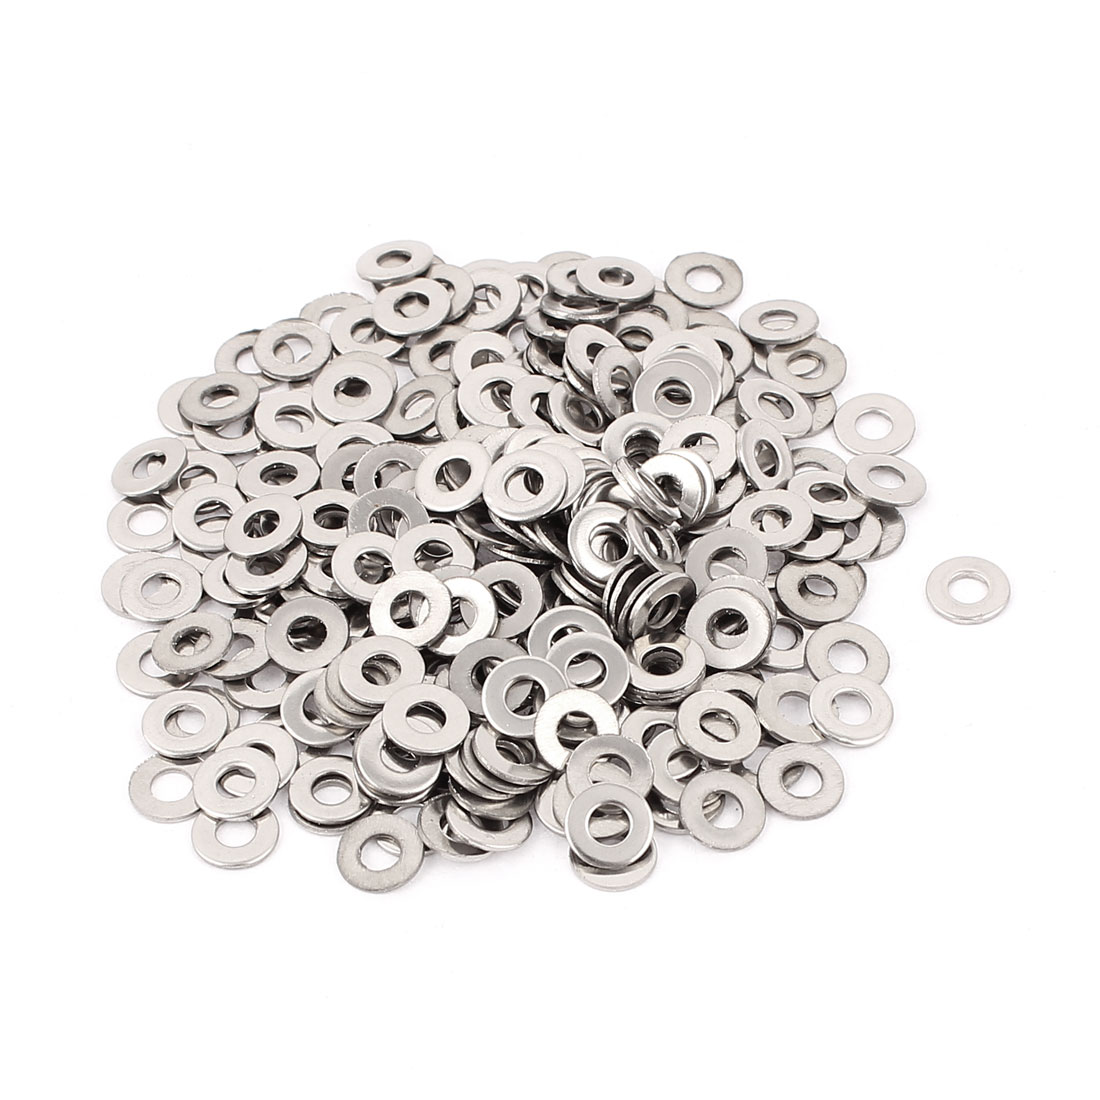 300pcs 3mm Flat Stainless Steel Washers Spacers for M3 Threaded Screws